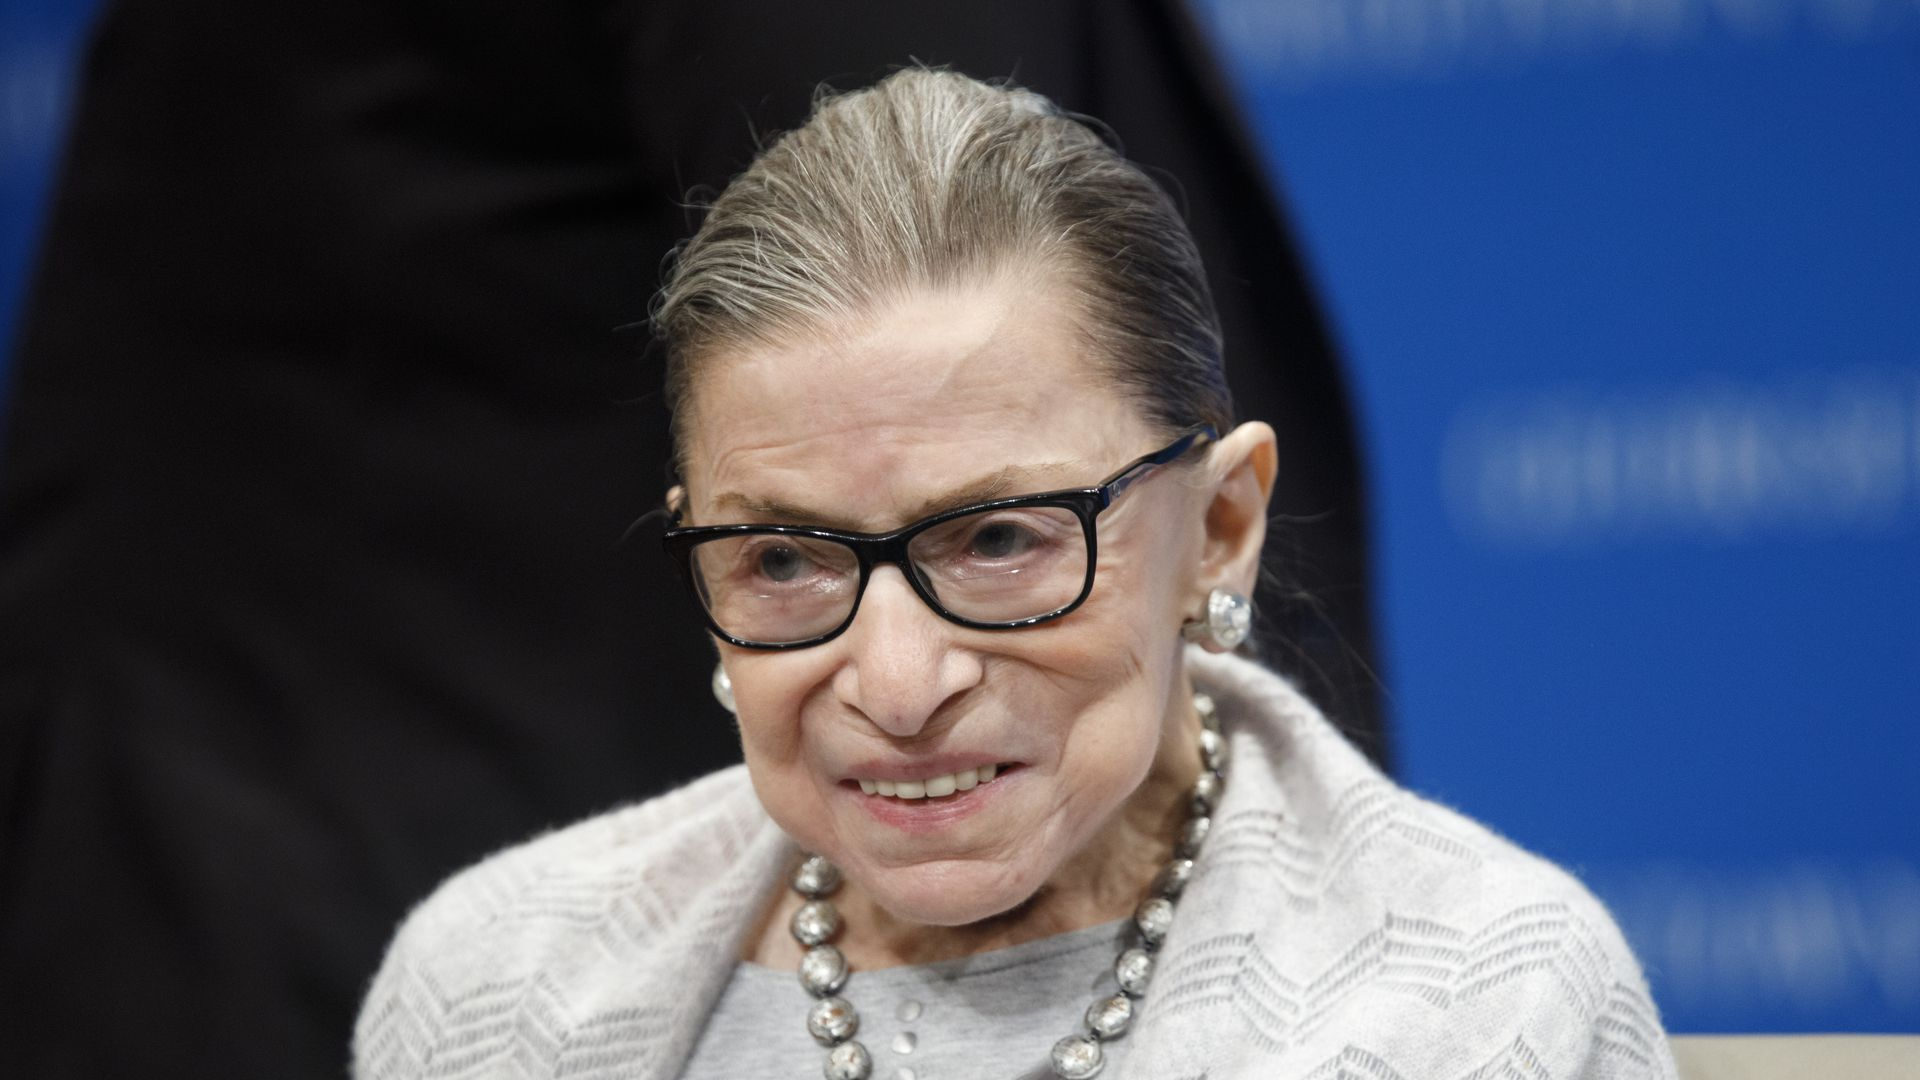 """Ruth Bader Ginsburg: Historians will view today's political climate as """"an aberration"""""""